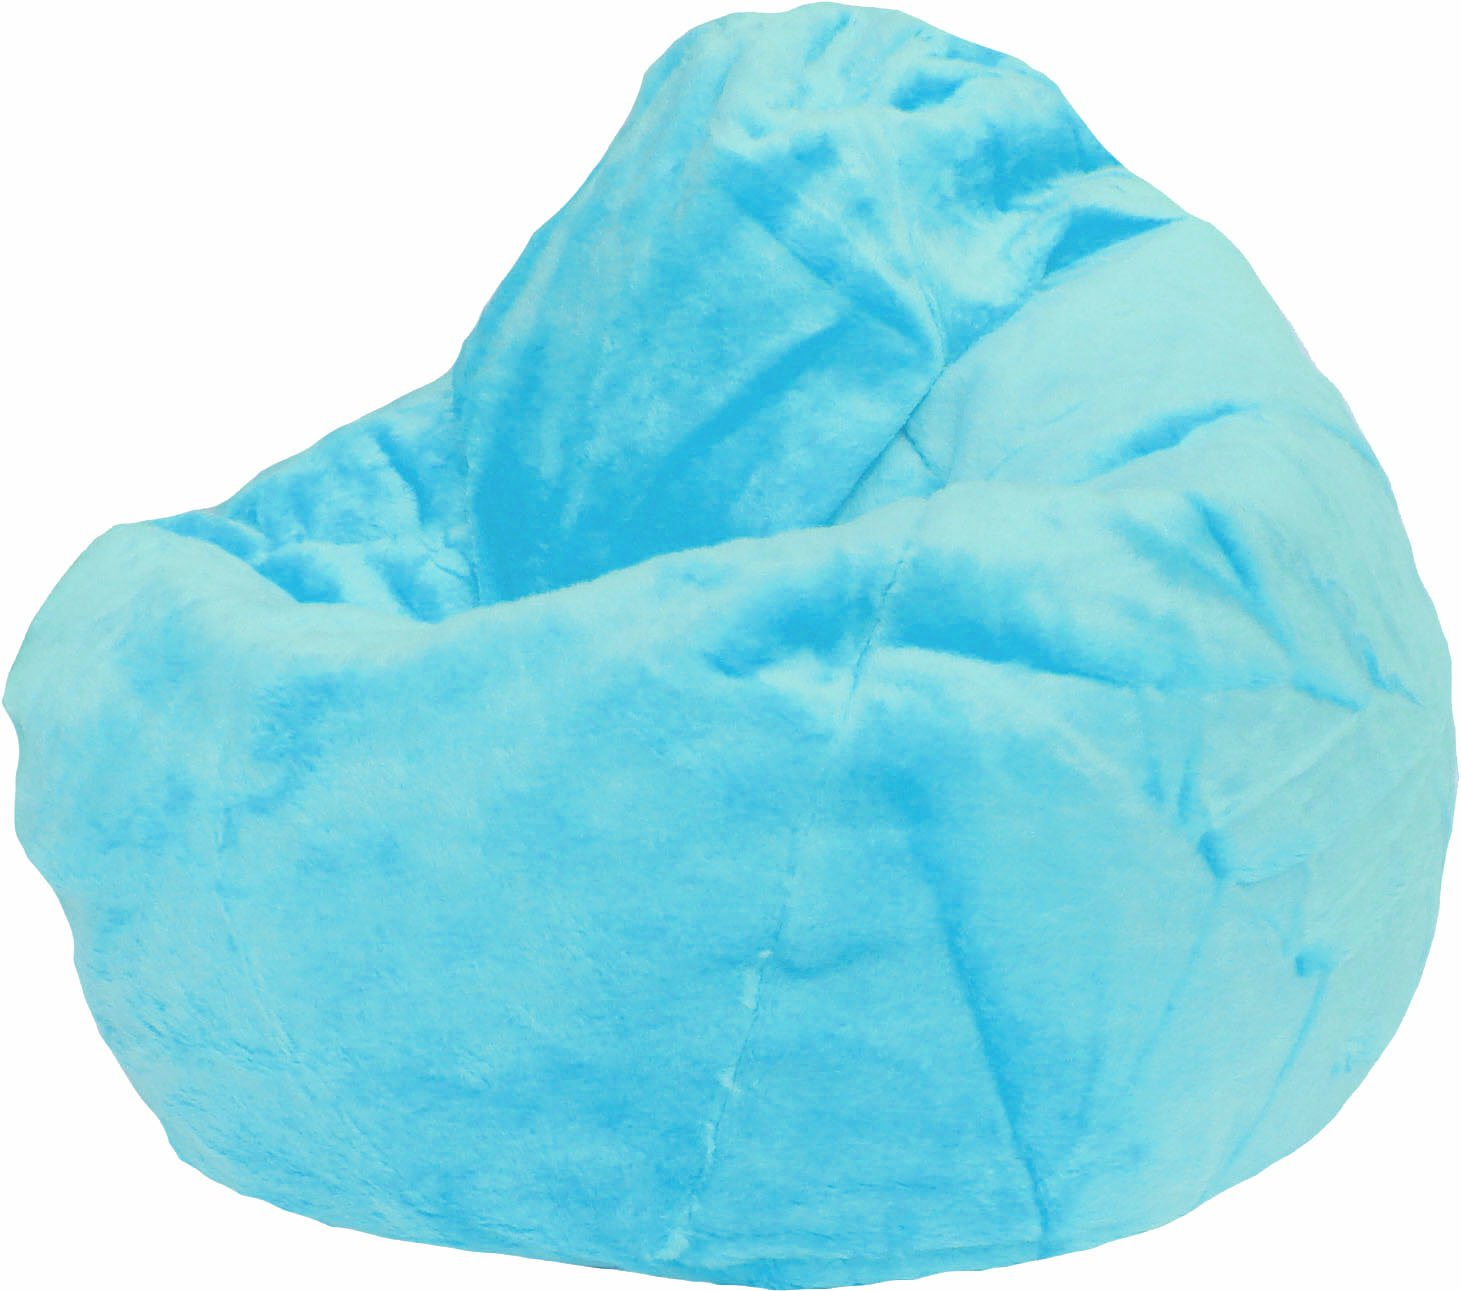 Blue Bean Bag Chairs - Amazon com furry bean bag chair in baby blue by beanbagblitz com toys games